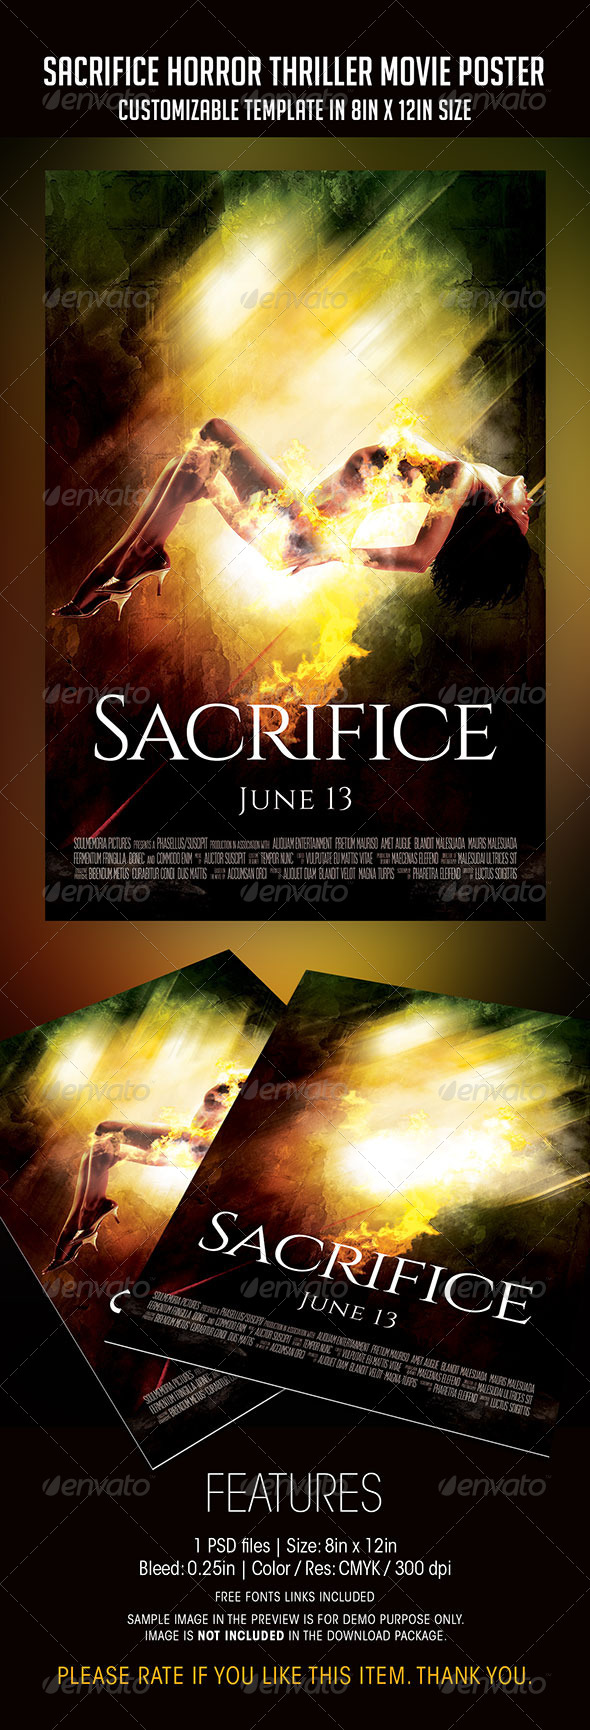 movie poster psd files free download